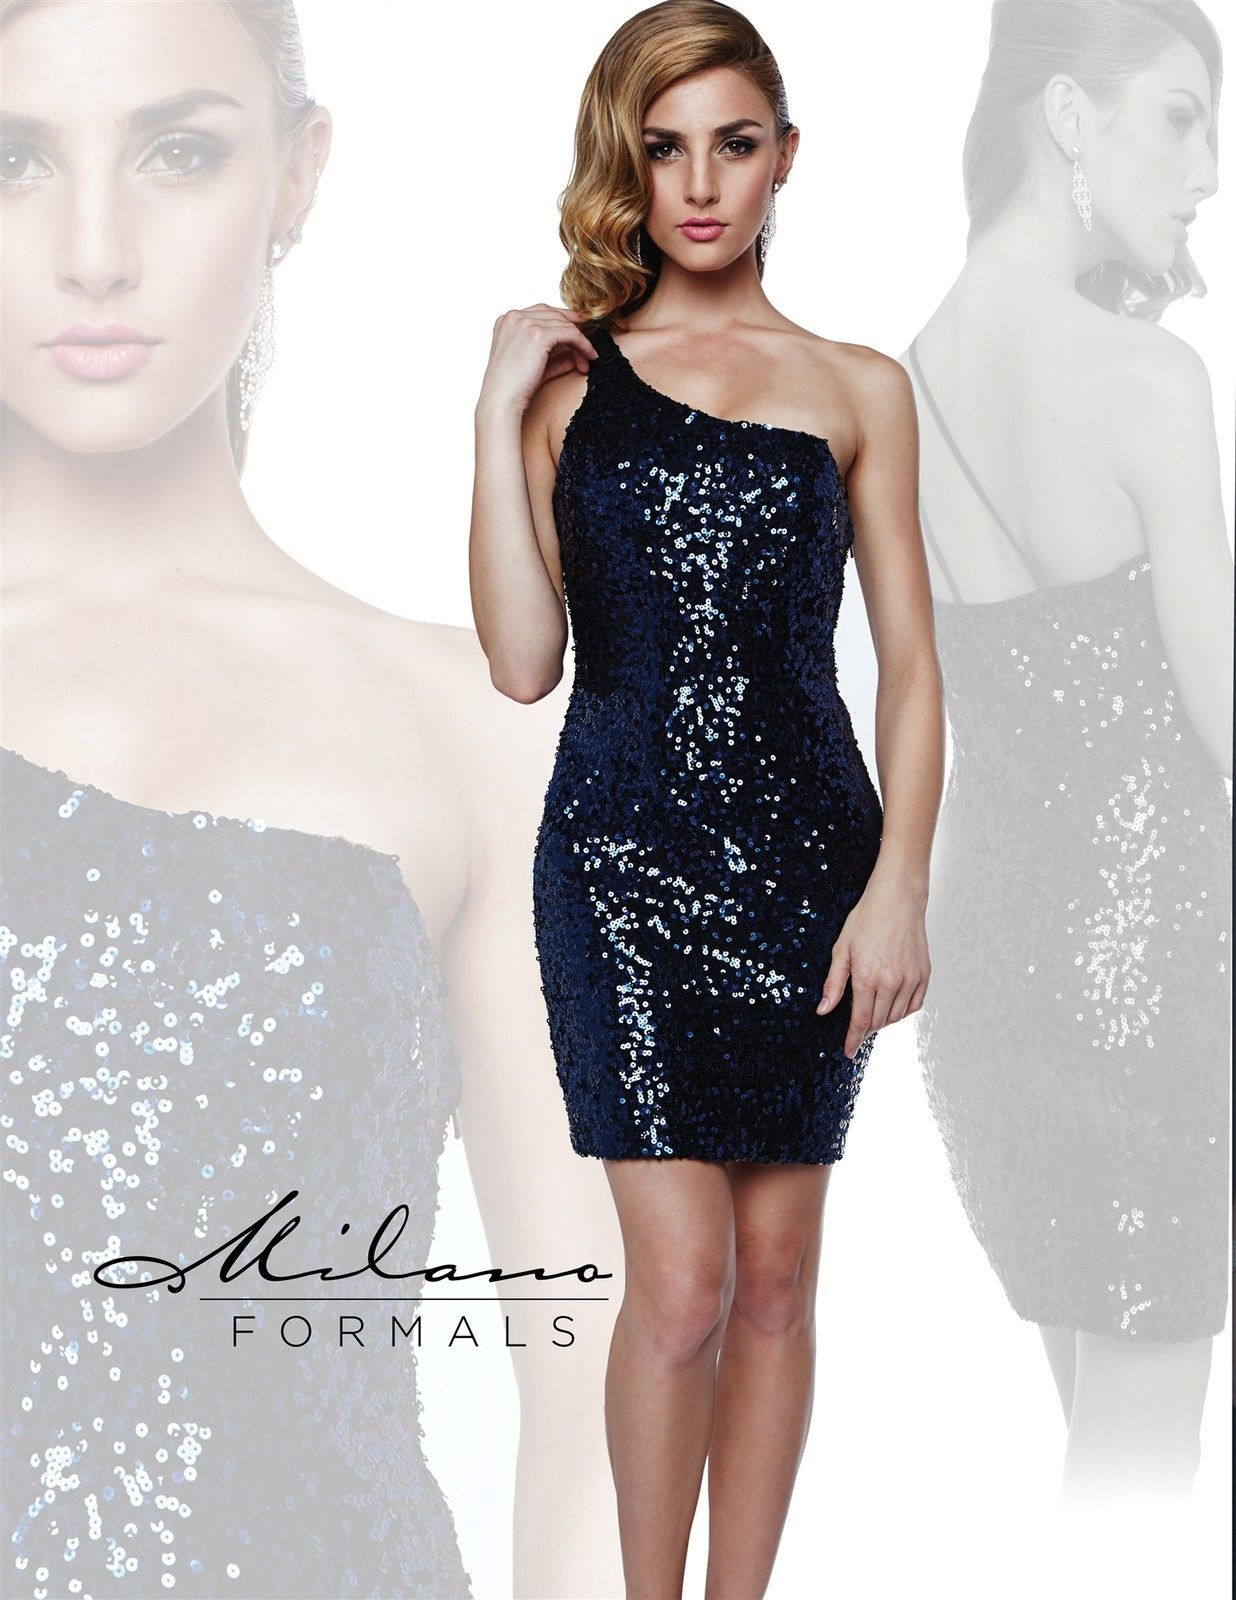 Image 1 of Milano Formals E1606 Sequin Navy Mini One Shoulder Fitted Party Dress 14